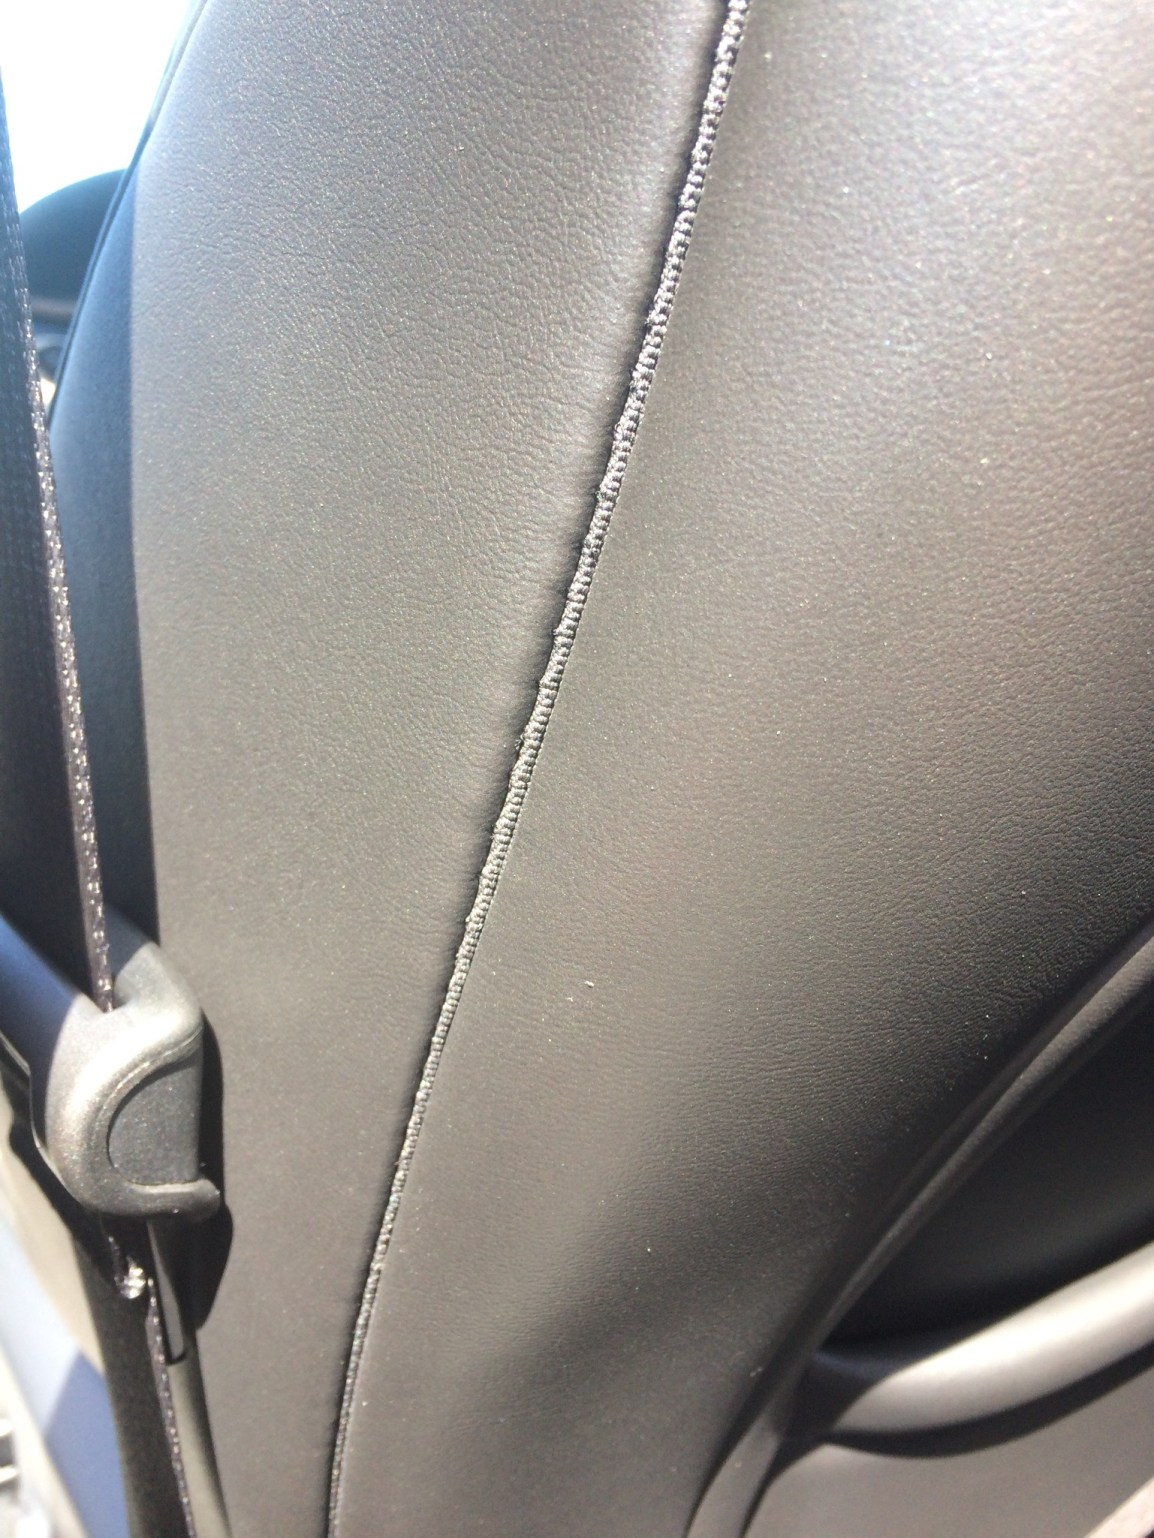 Mobile Leather Repair on vehicle